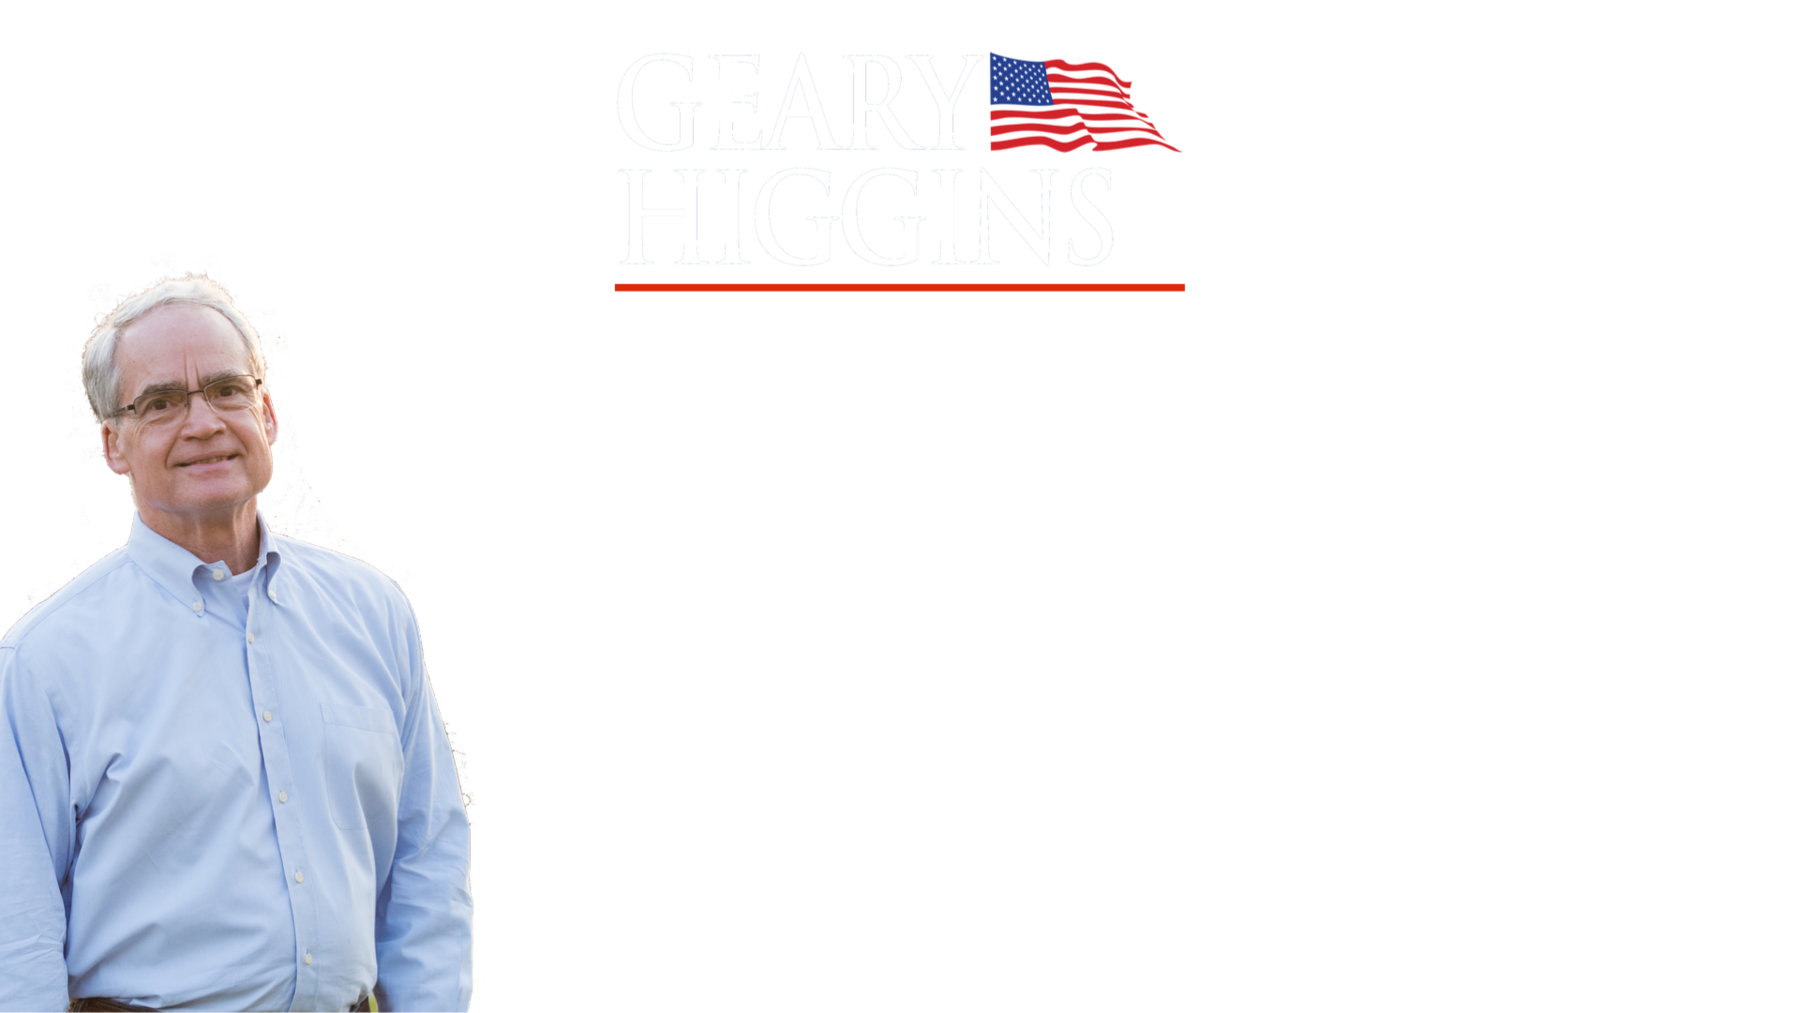 Geary Higgins For Senate: General Fund